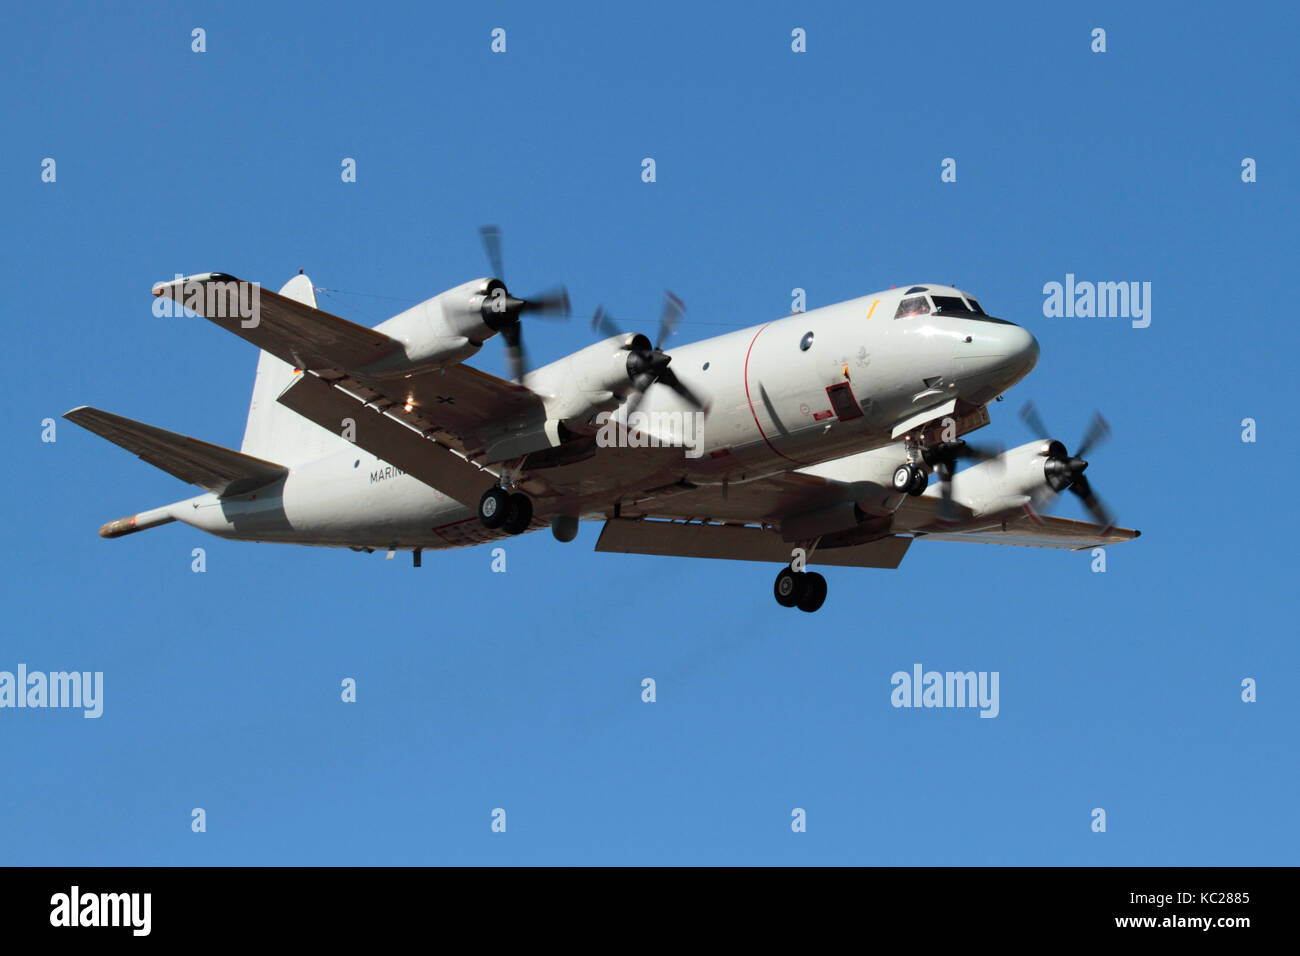 Military aviation. German Navy P-3C Orion maritime patrol aeroplane in flight - Stock Image